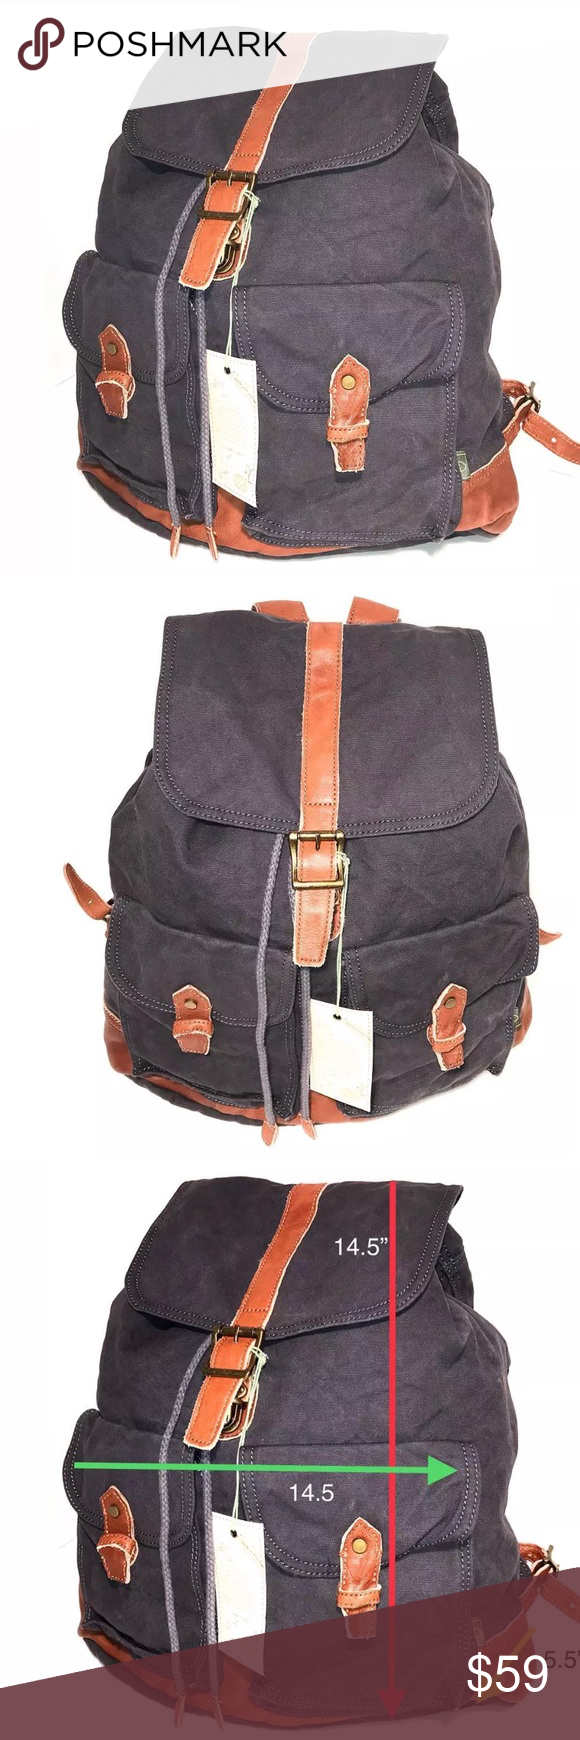 bdf6bccab7ea TSD Brand Canvas w Leather Trim Large Backpack TSD Brand ~ Trail Breeze  📌Description Color  Dark Grey Material  100% cotton canvas with leather  trim ...